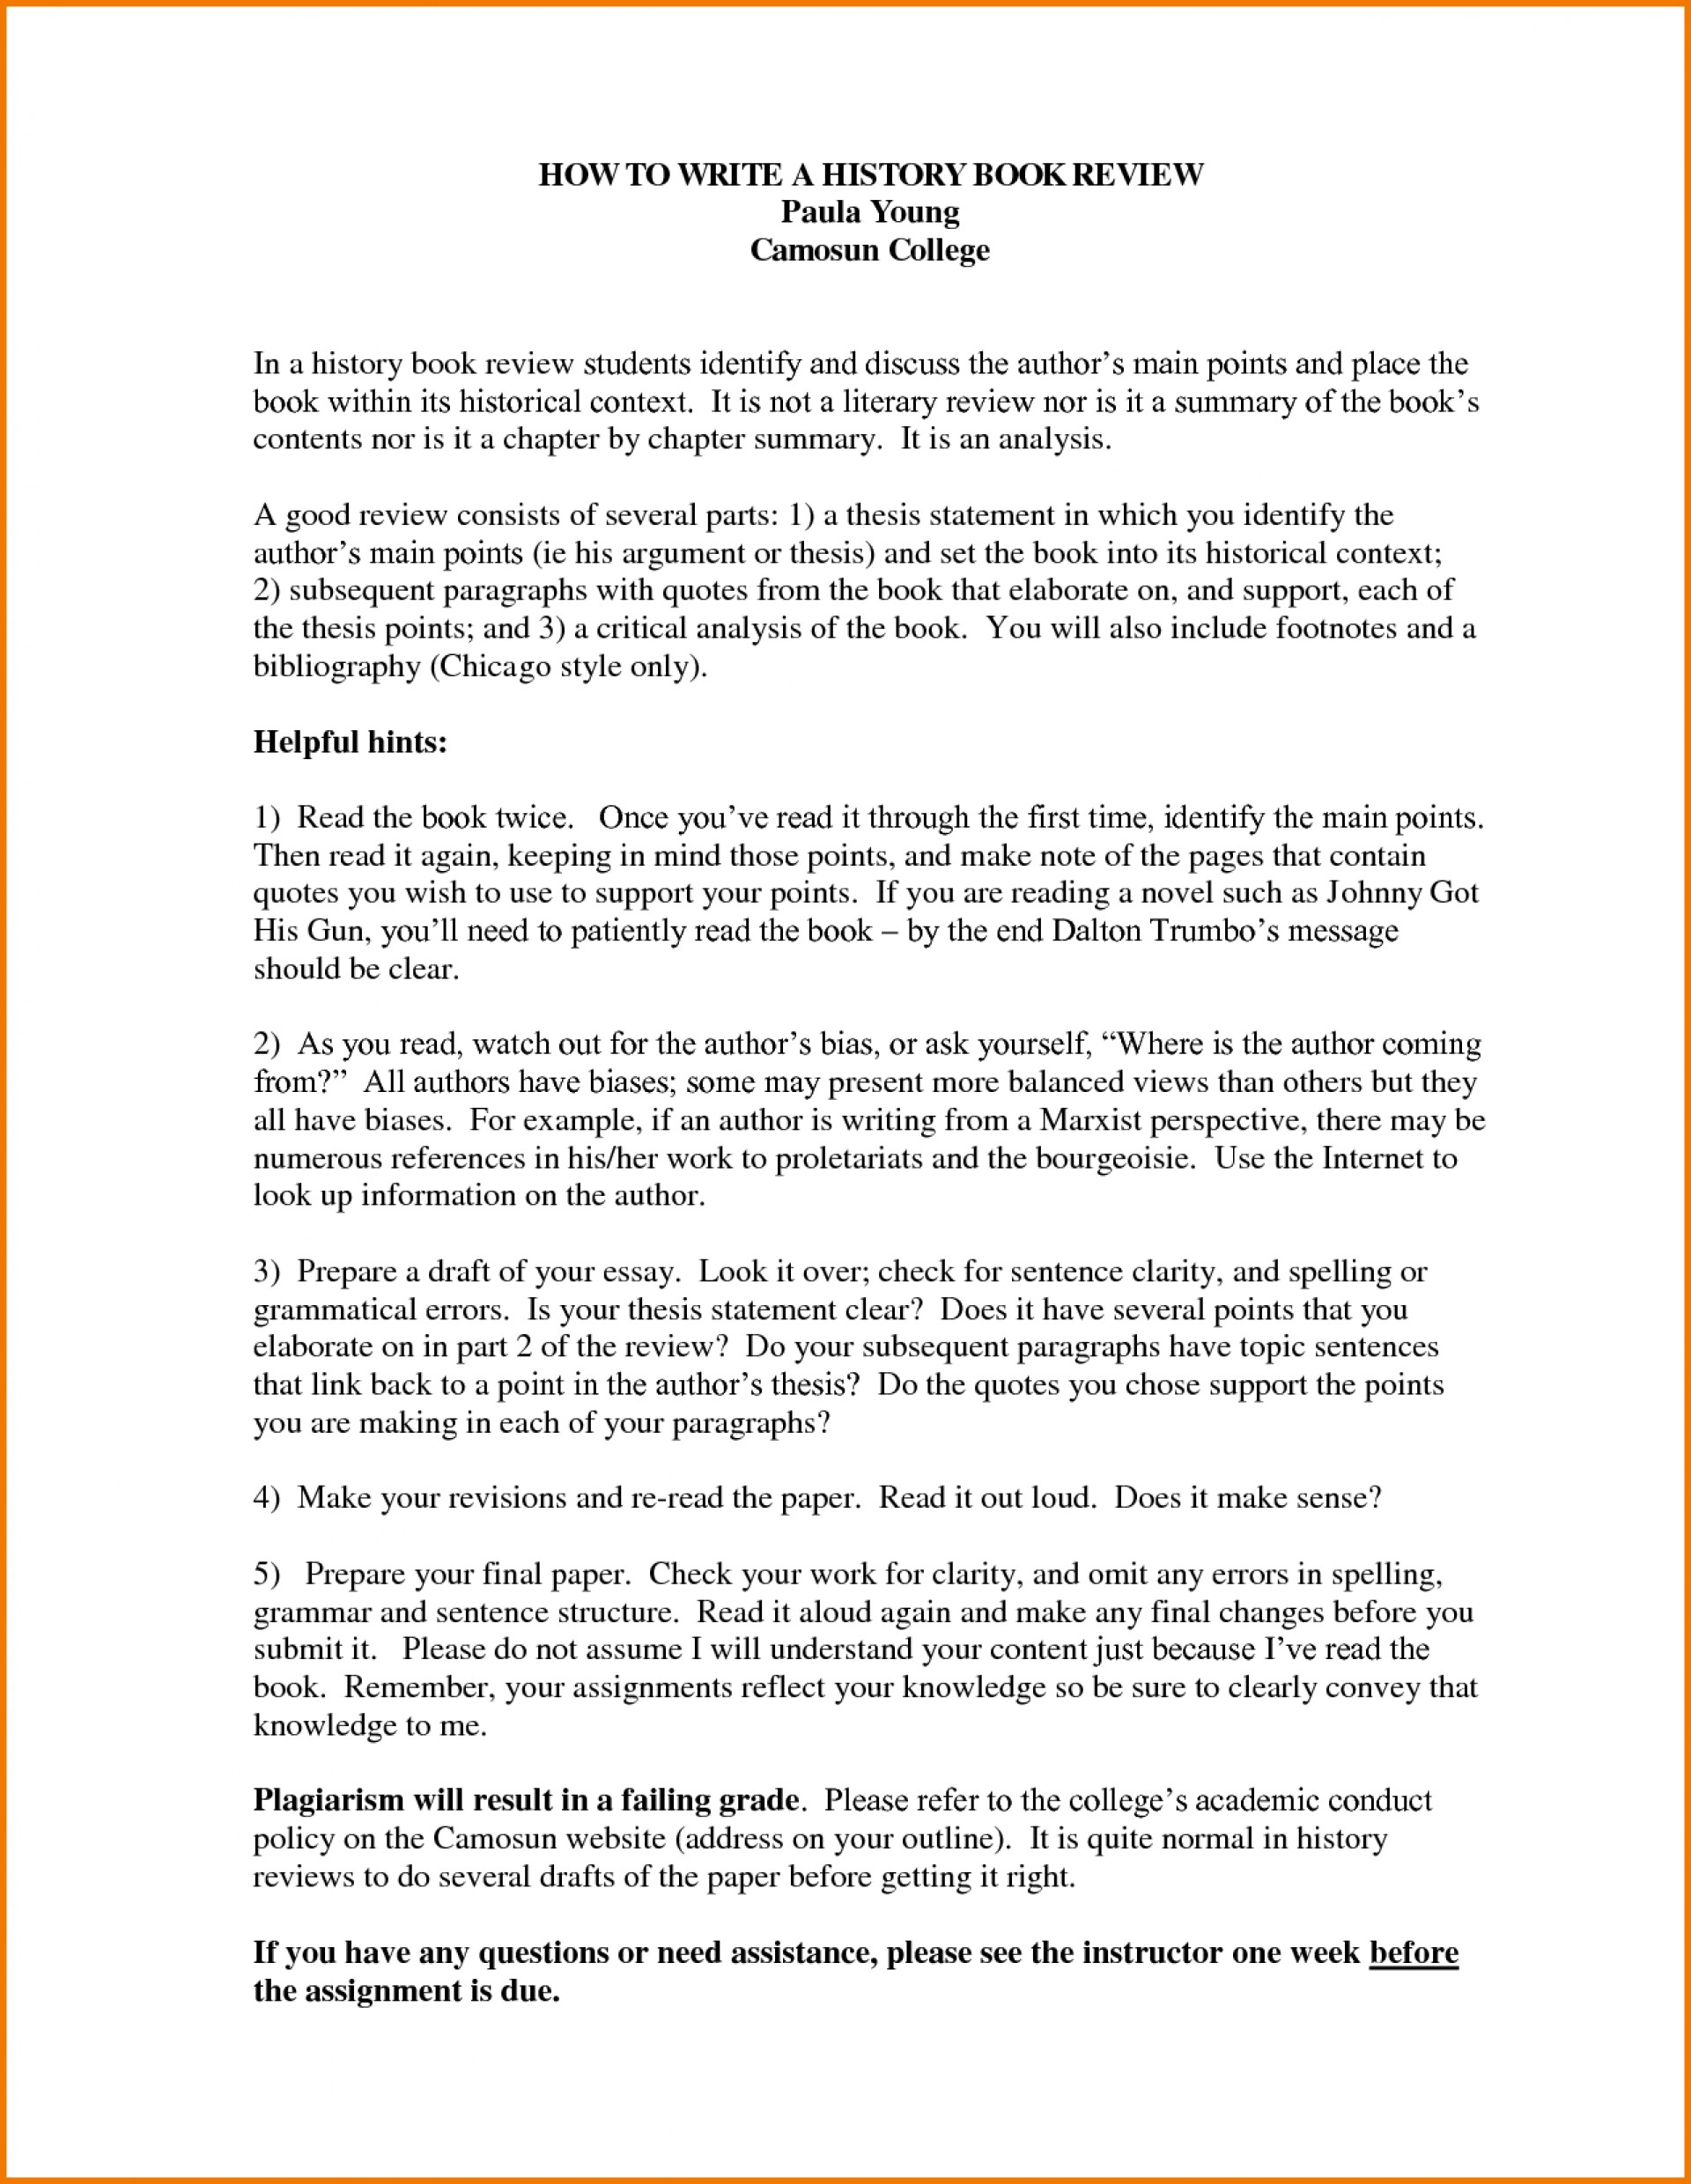 014 How To Write Book Review Essay Example Unusual A Pdf Paper Thesis 1920